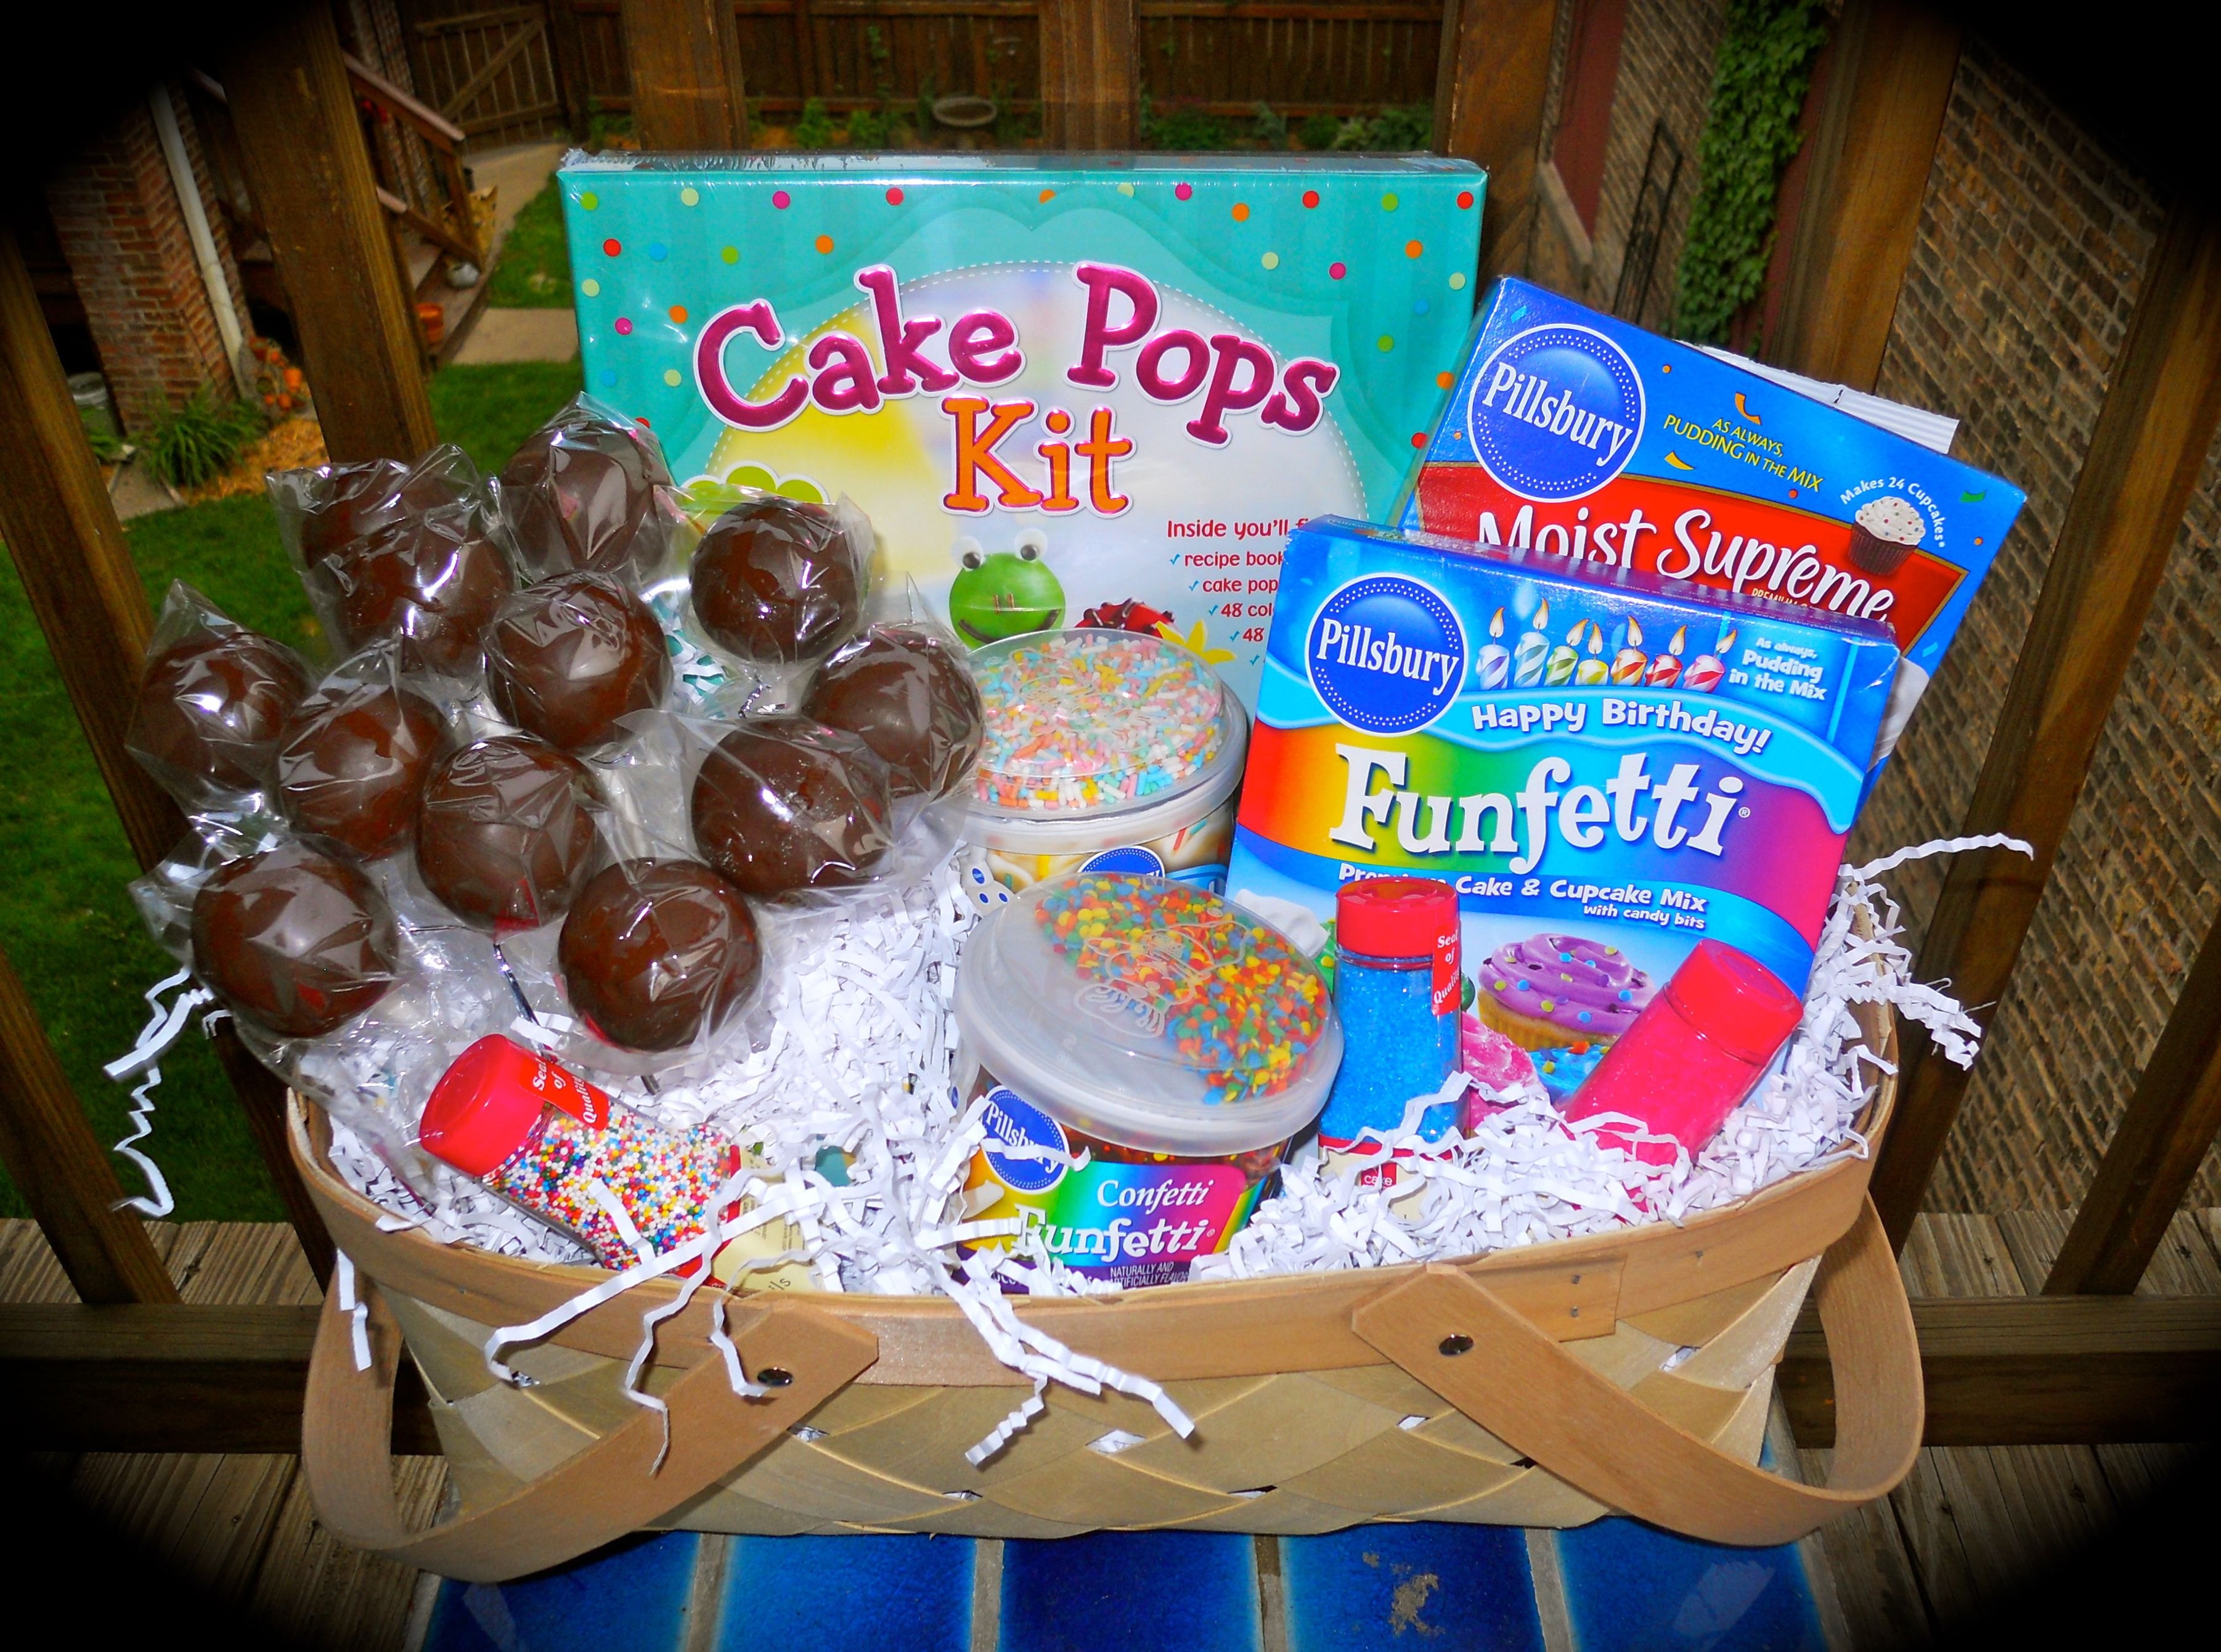 Cake Pop Themed Basket For A Silent Auction